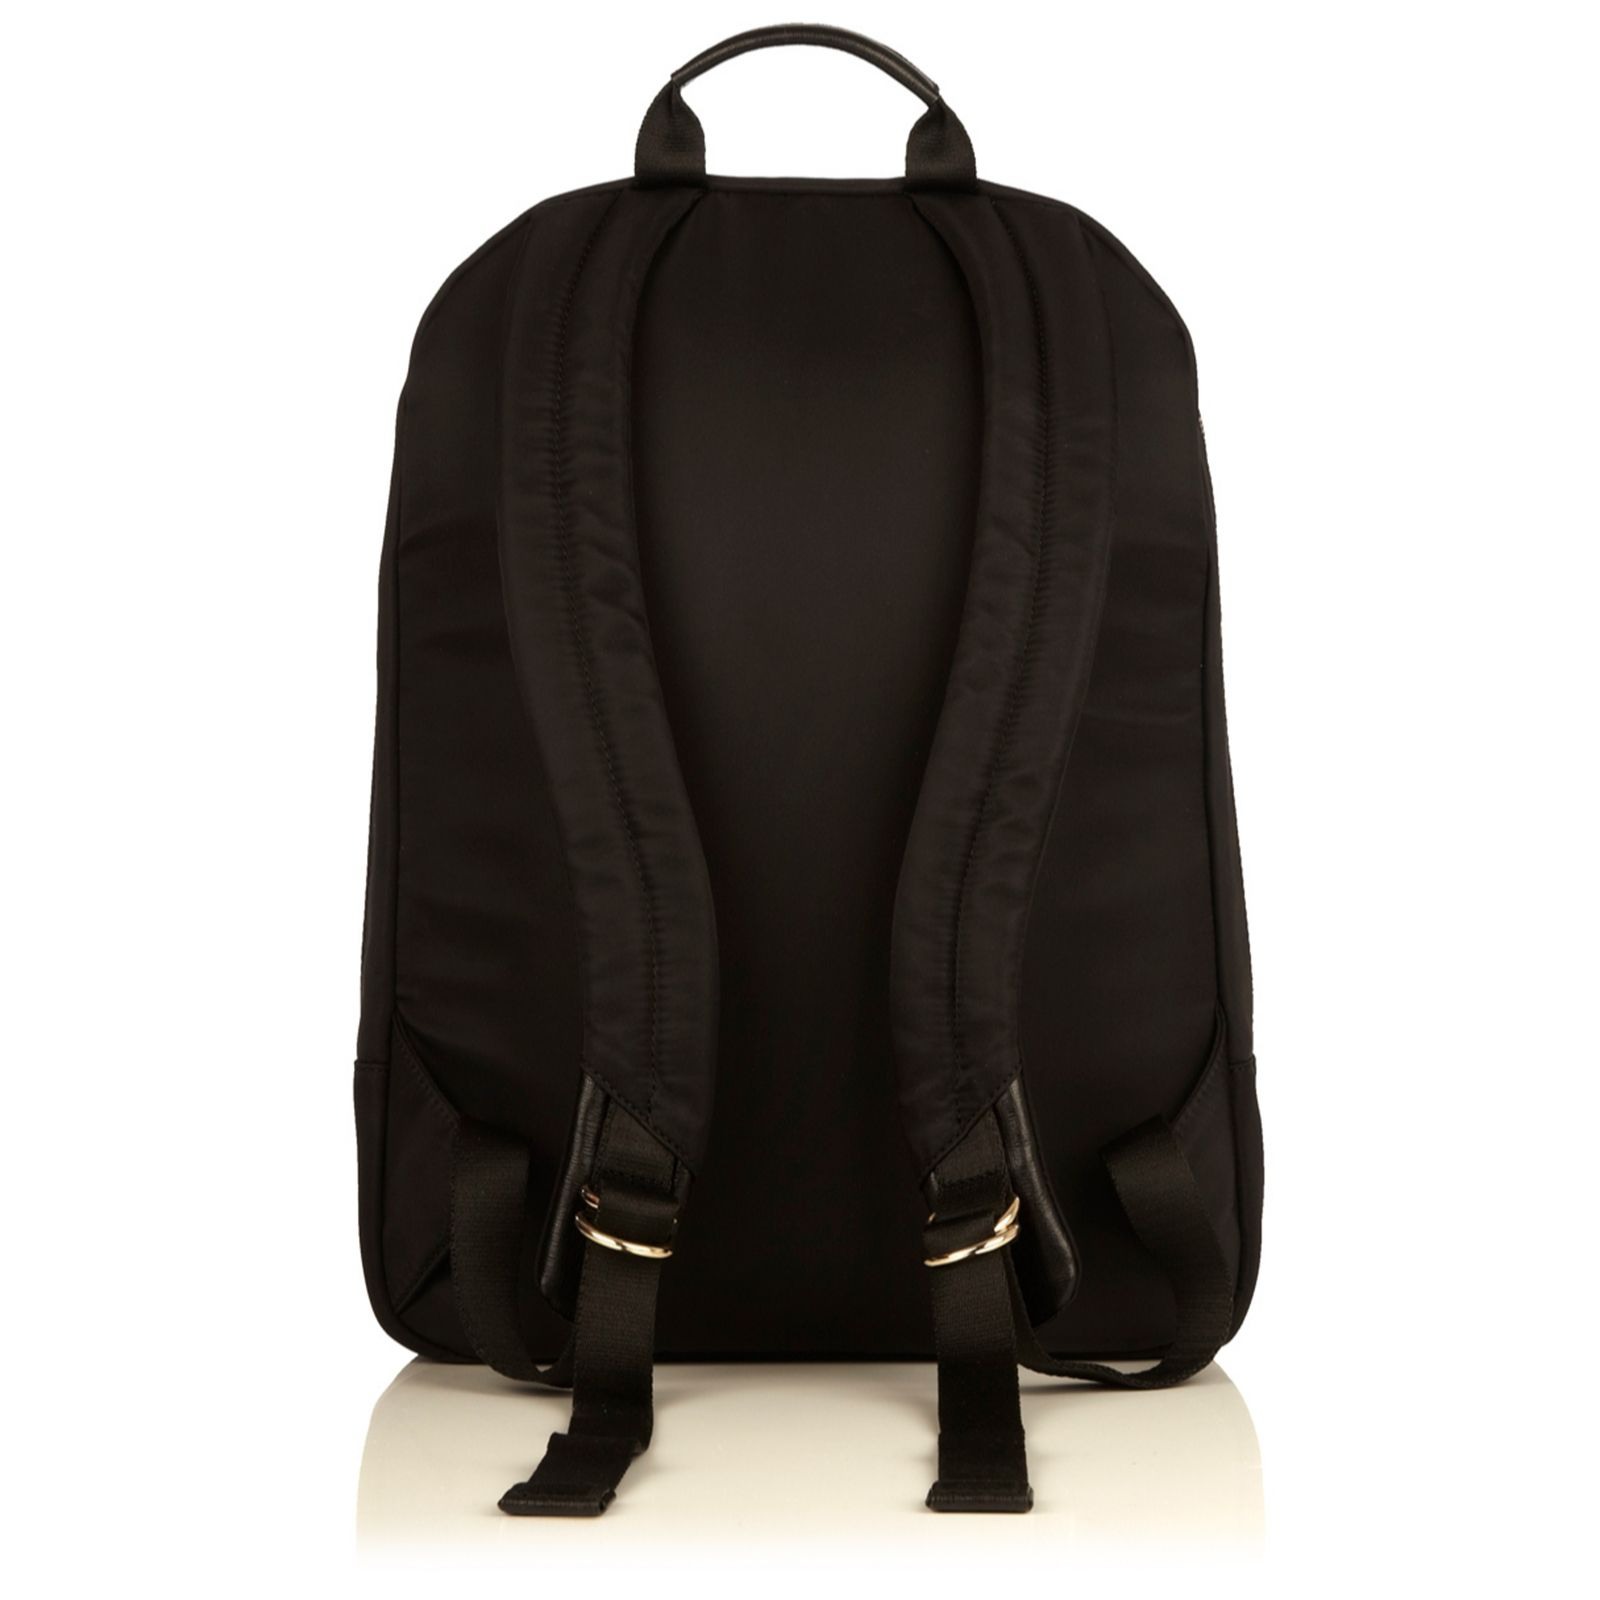 8f779364671 Knomo Beauchamp Women s Backpack For Laptops Up To 14